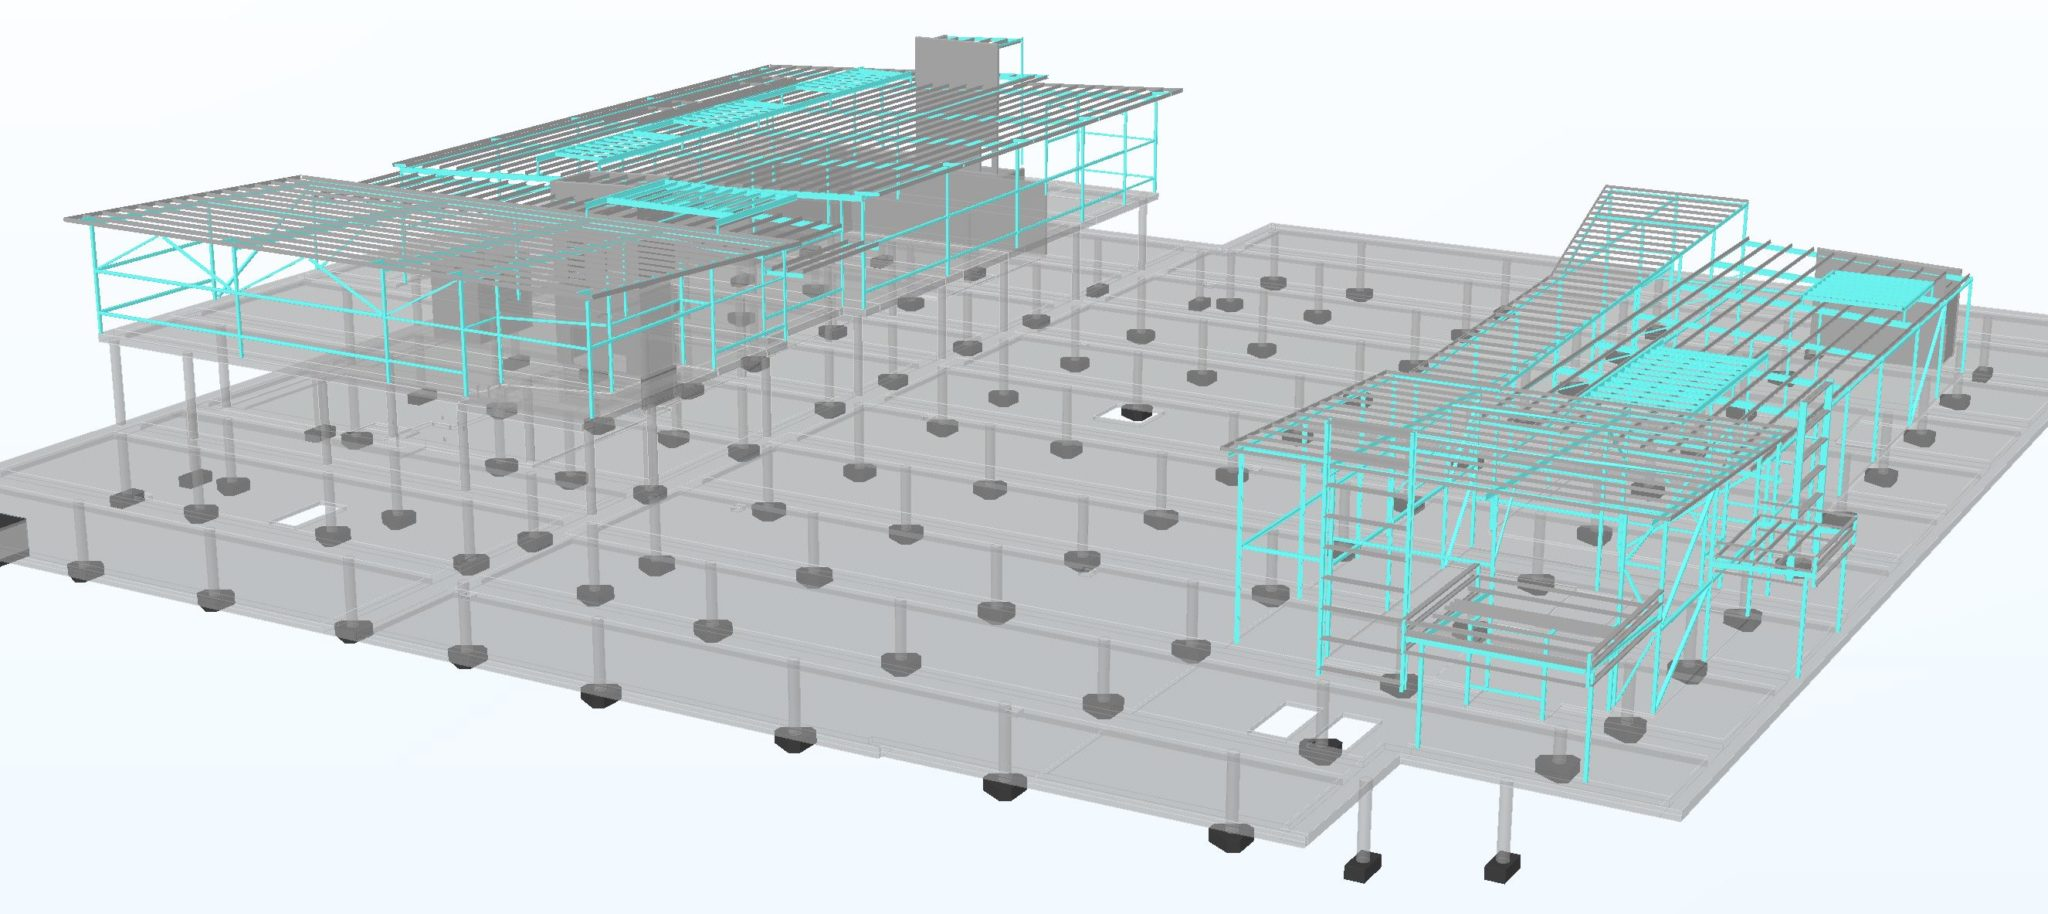 190201-Tekla-Marketing-Image